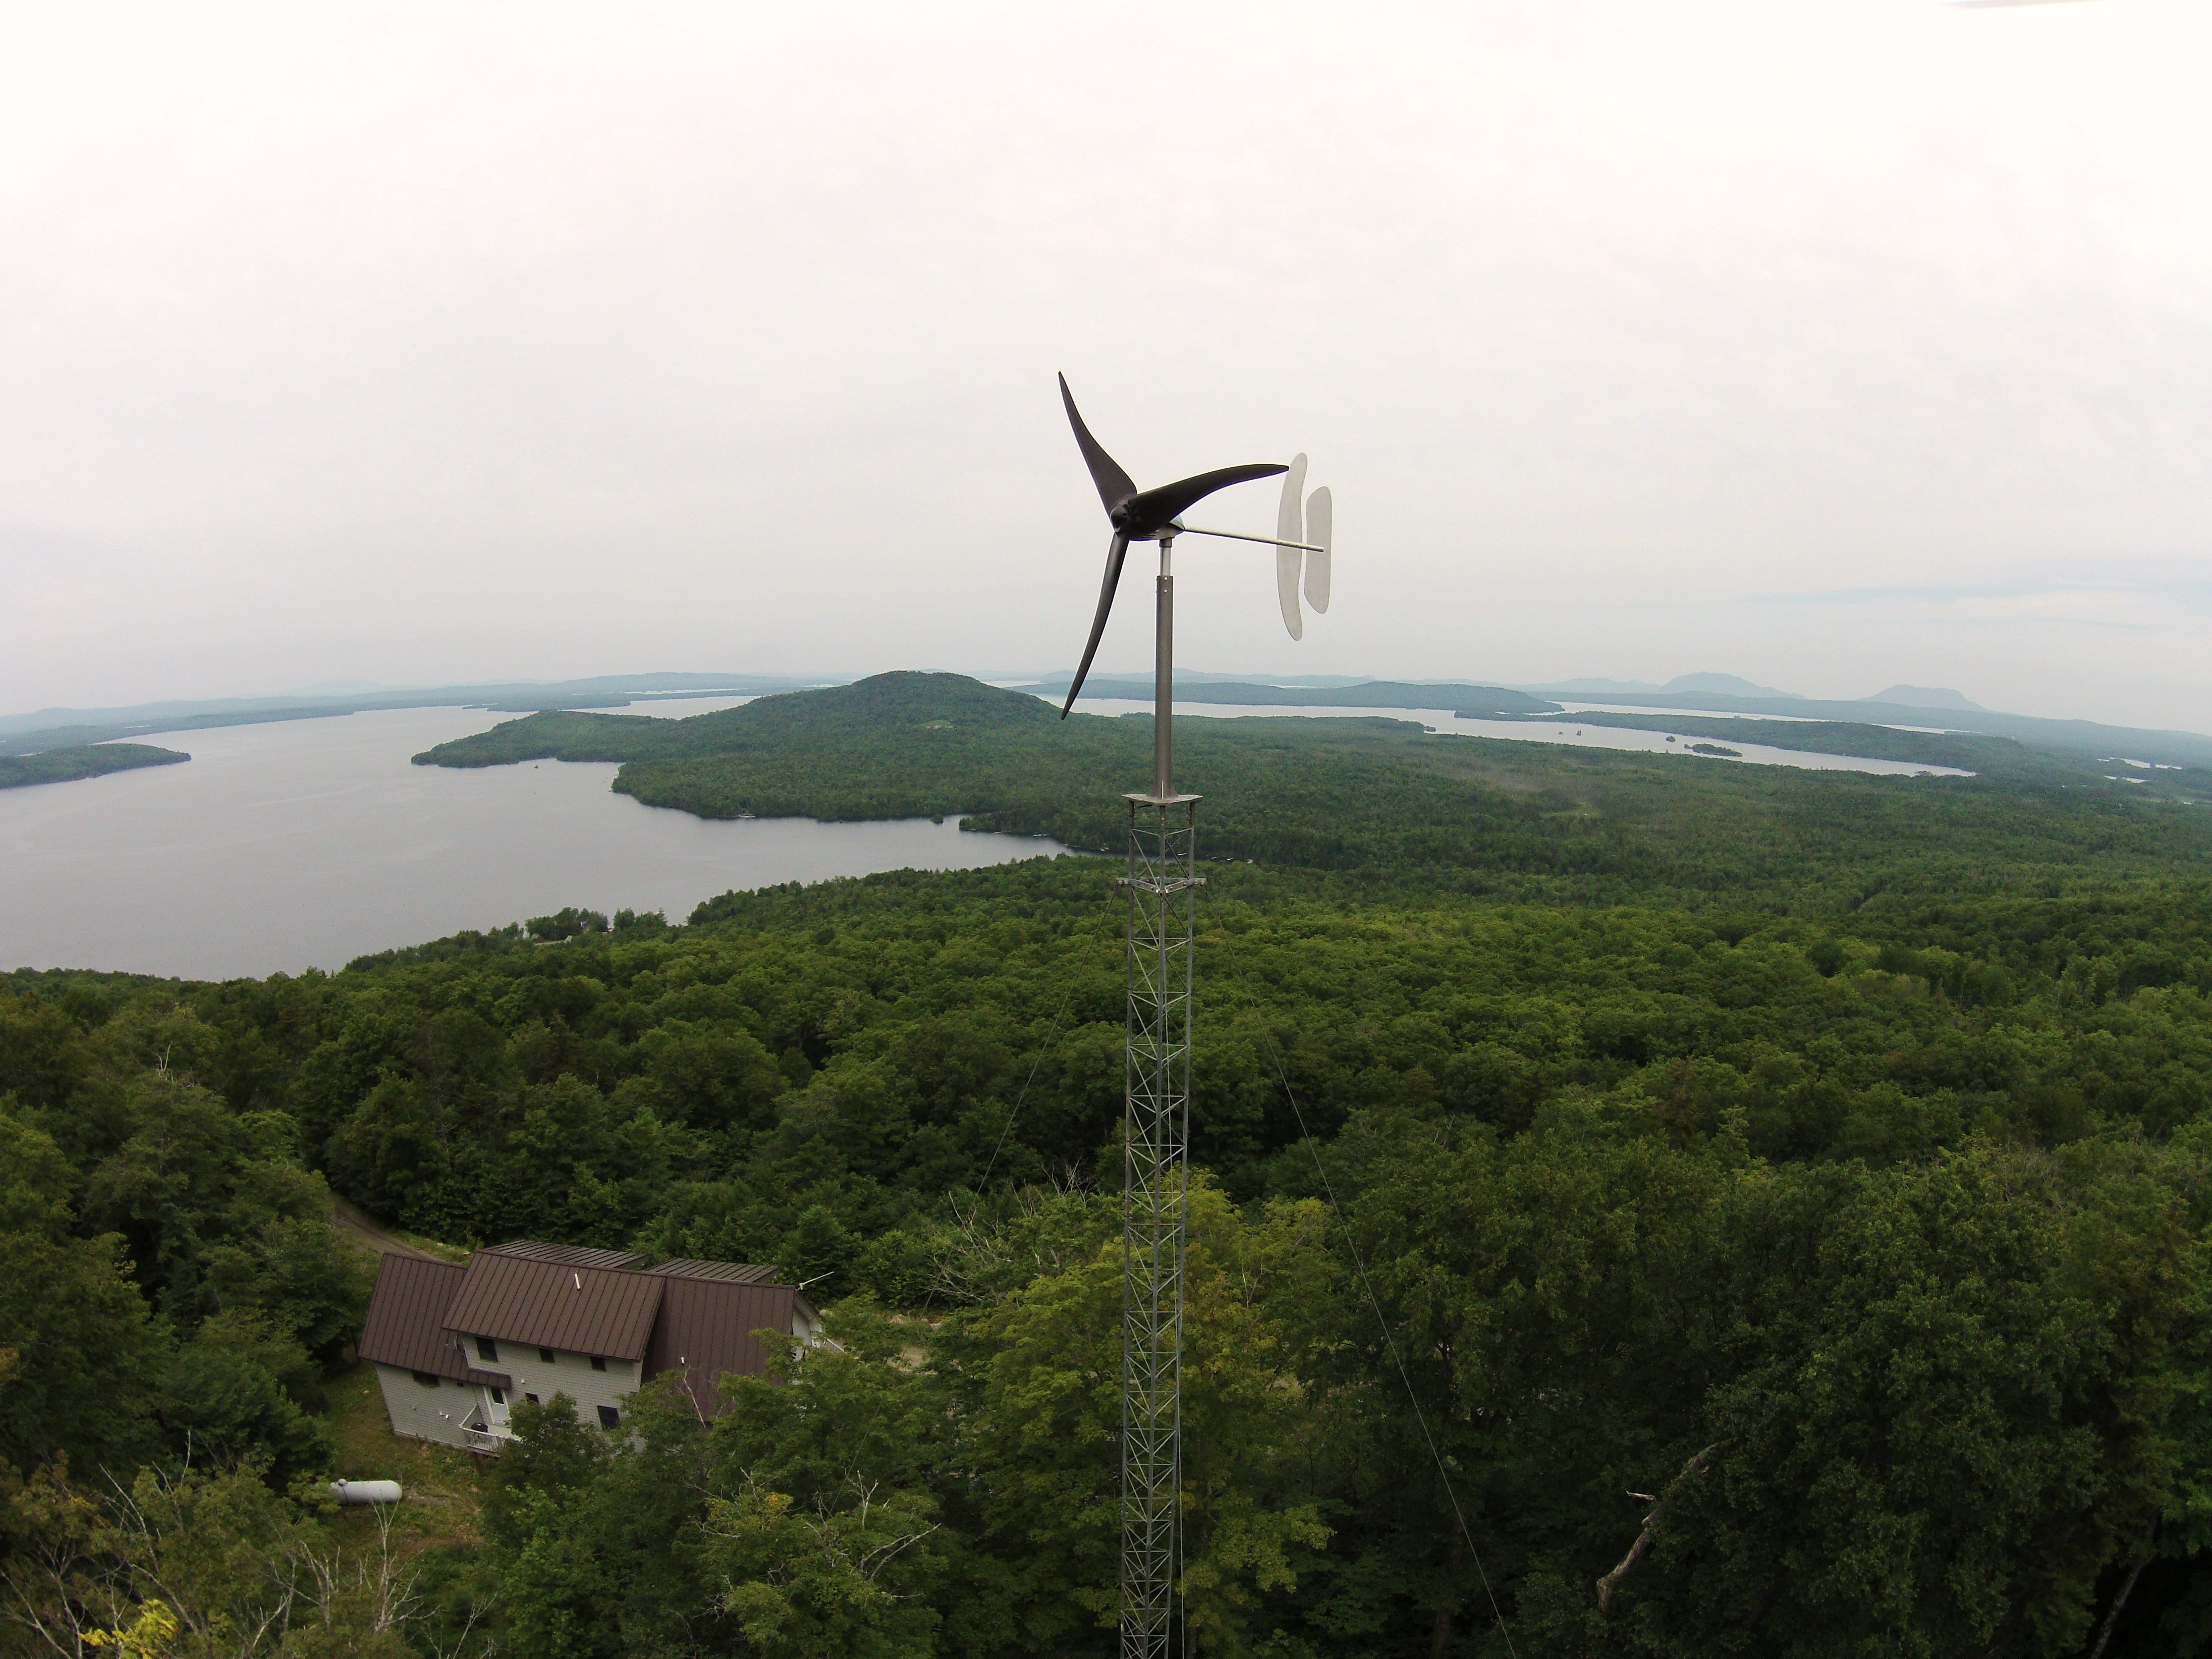 PNNL publishes data on 2017 distributed wind energy